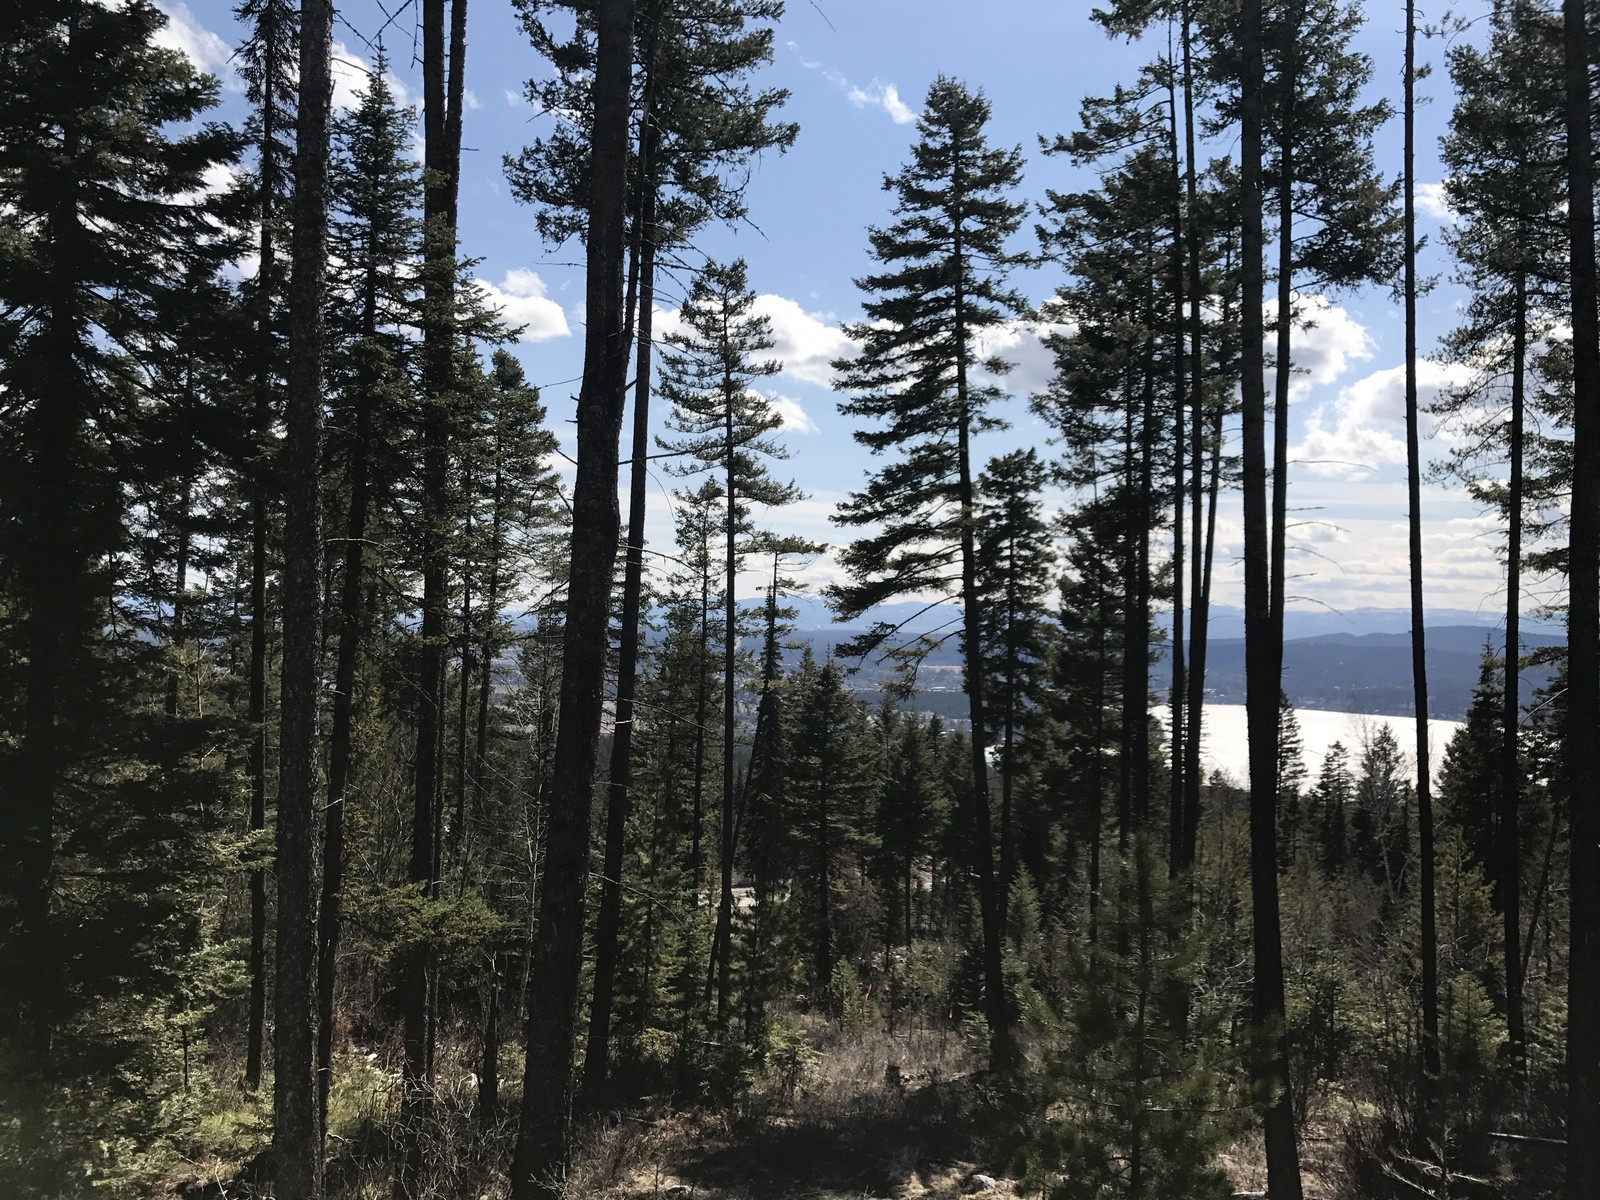 Land for Sale at 105 Bitterroot Court, Lot 171, Whitefish, MT 59937 105 Bitterroot Ct Lot 171 Whitefish, Montana, 59937 United States